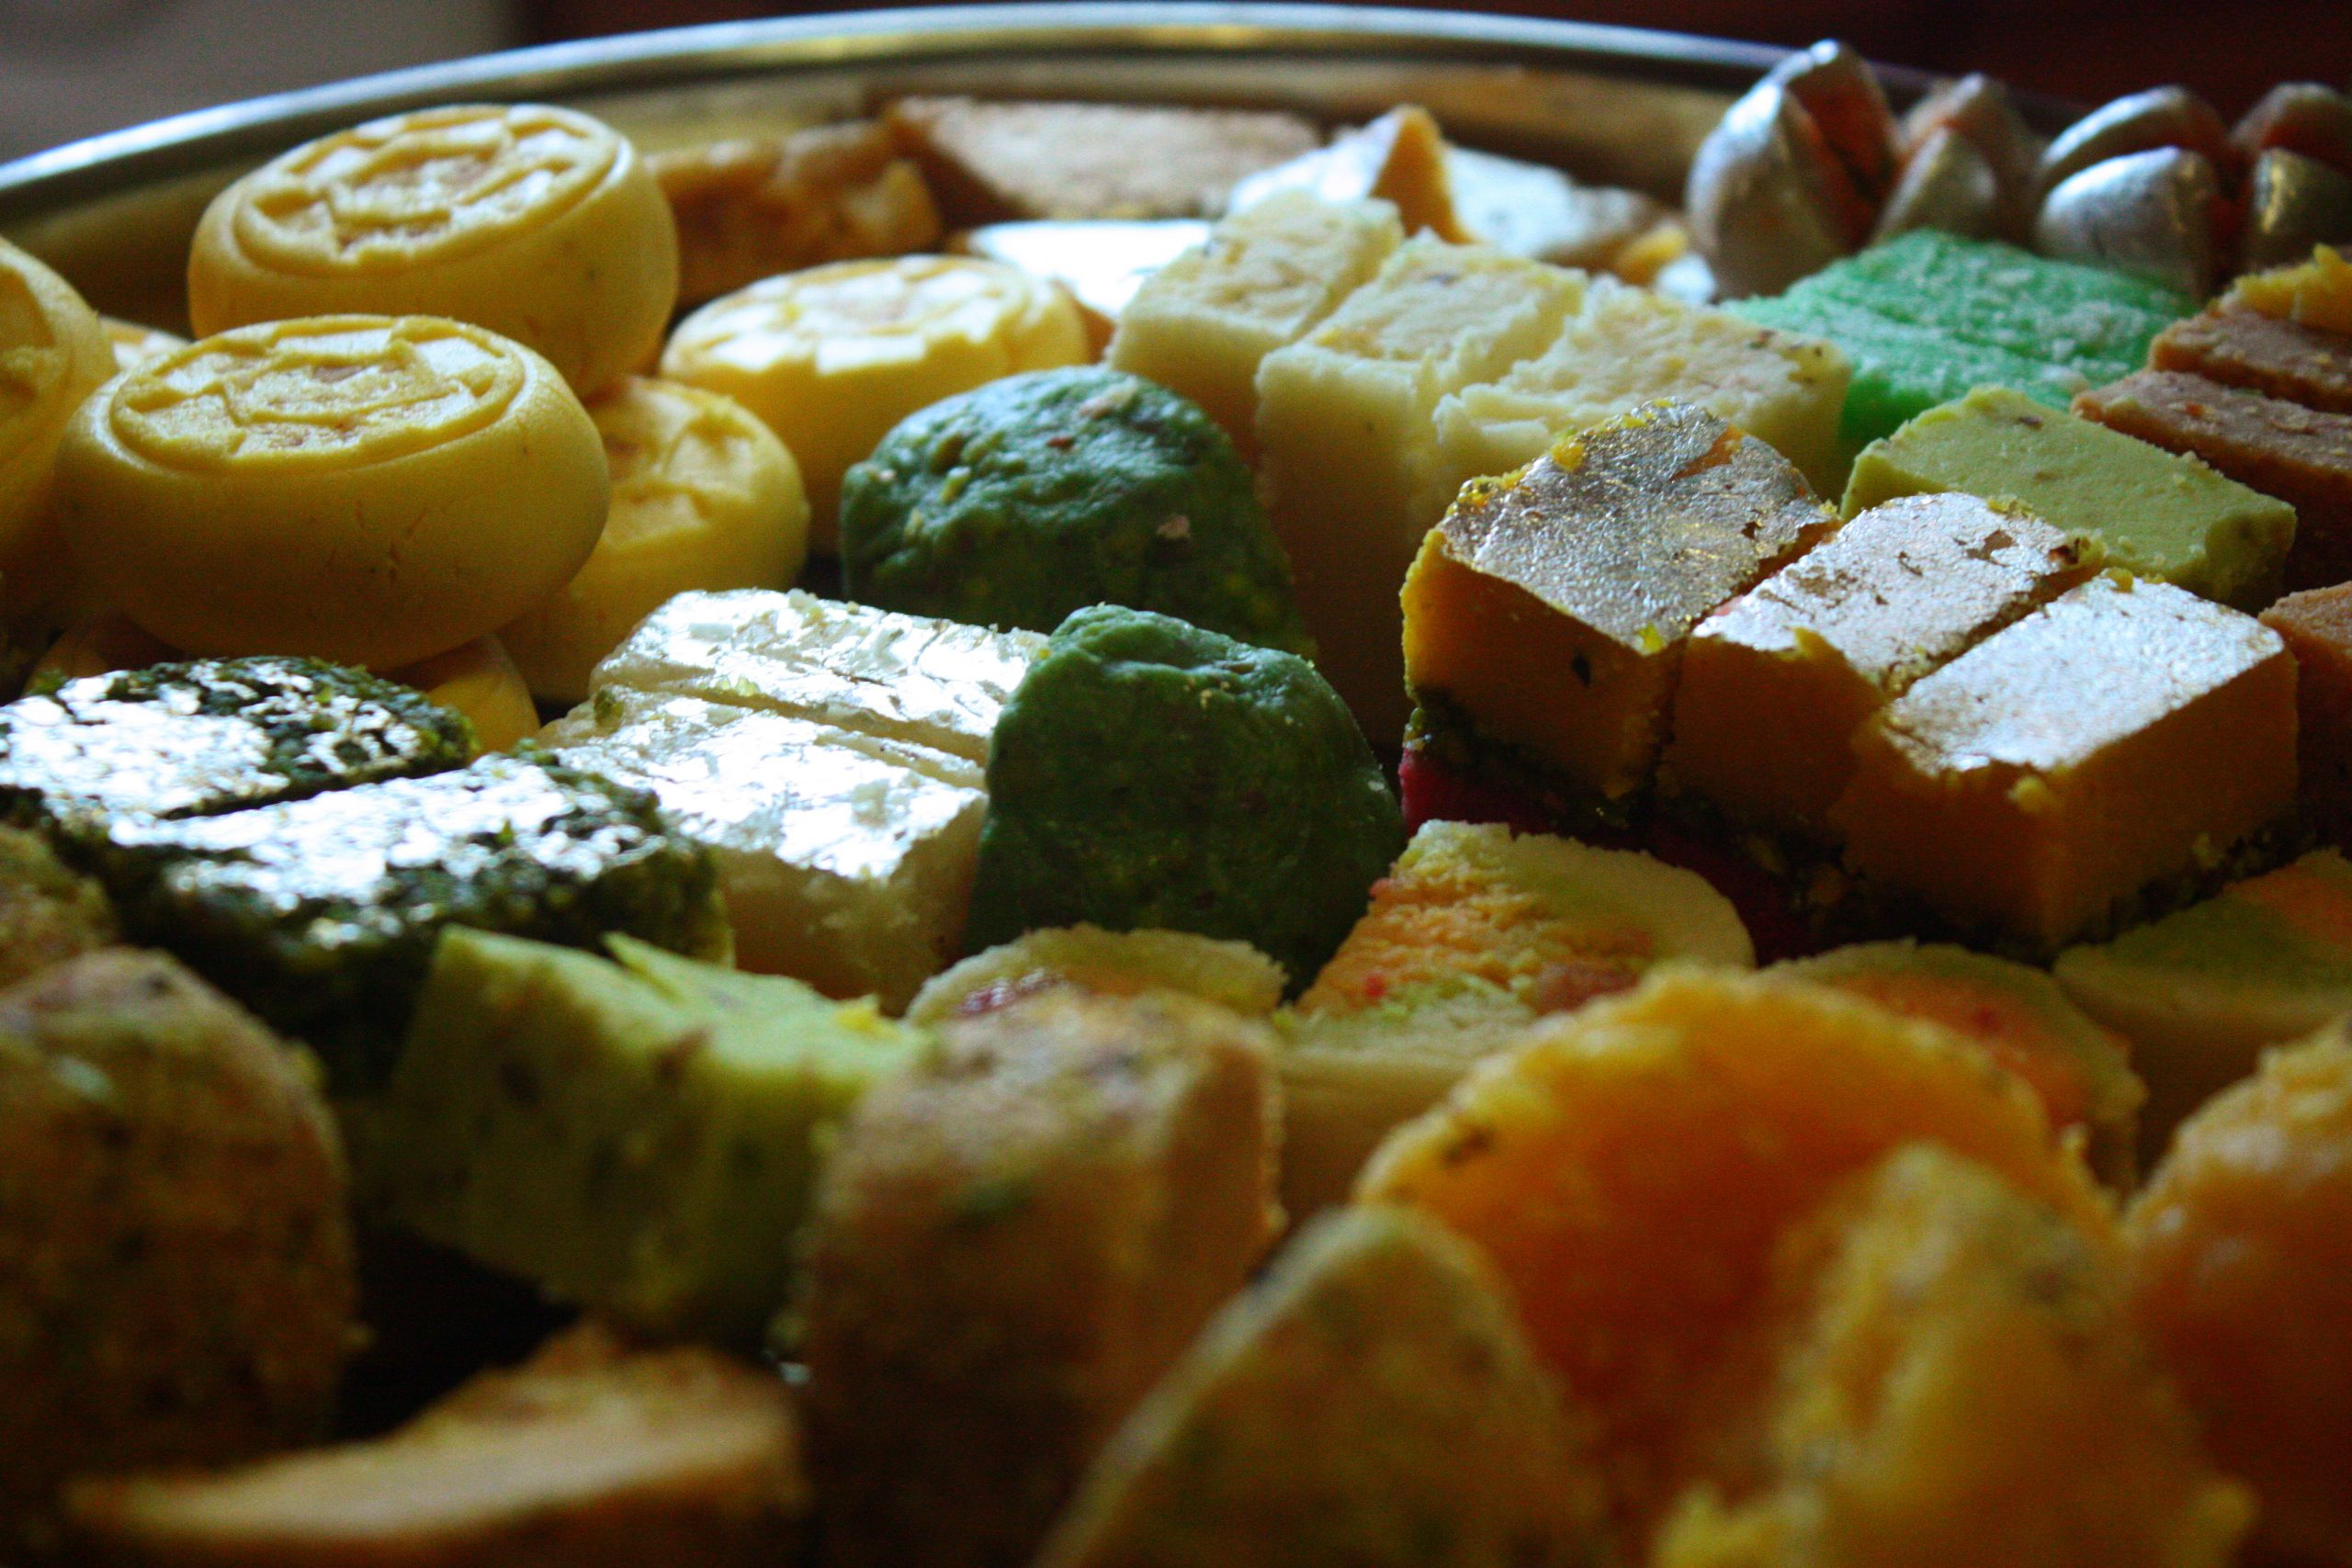 falguni gruh udyog-best of sweets available in ahmedabad city